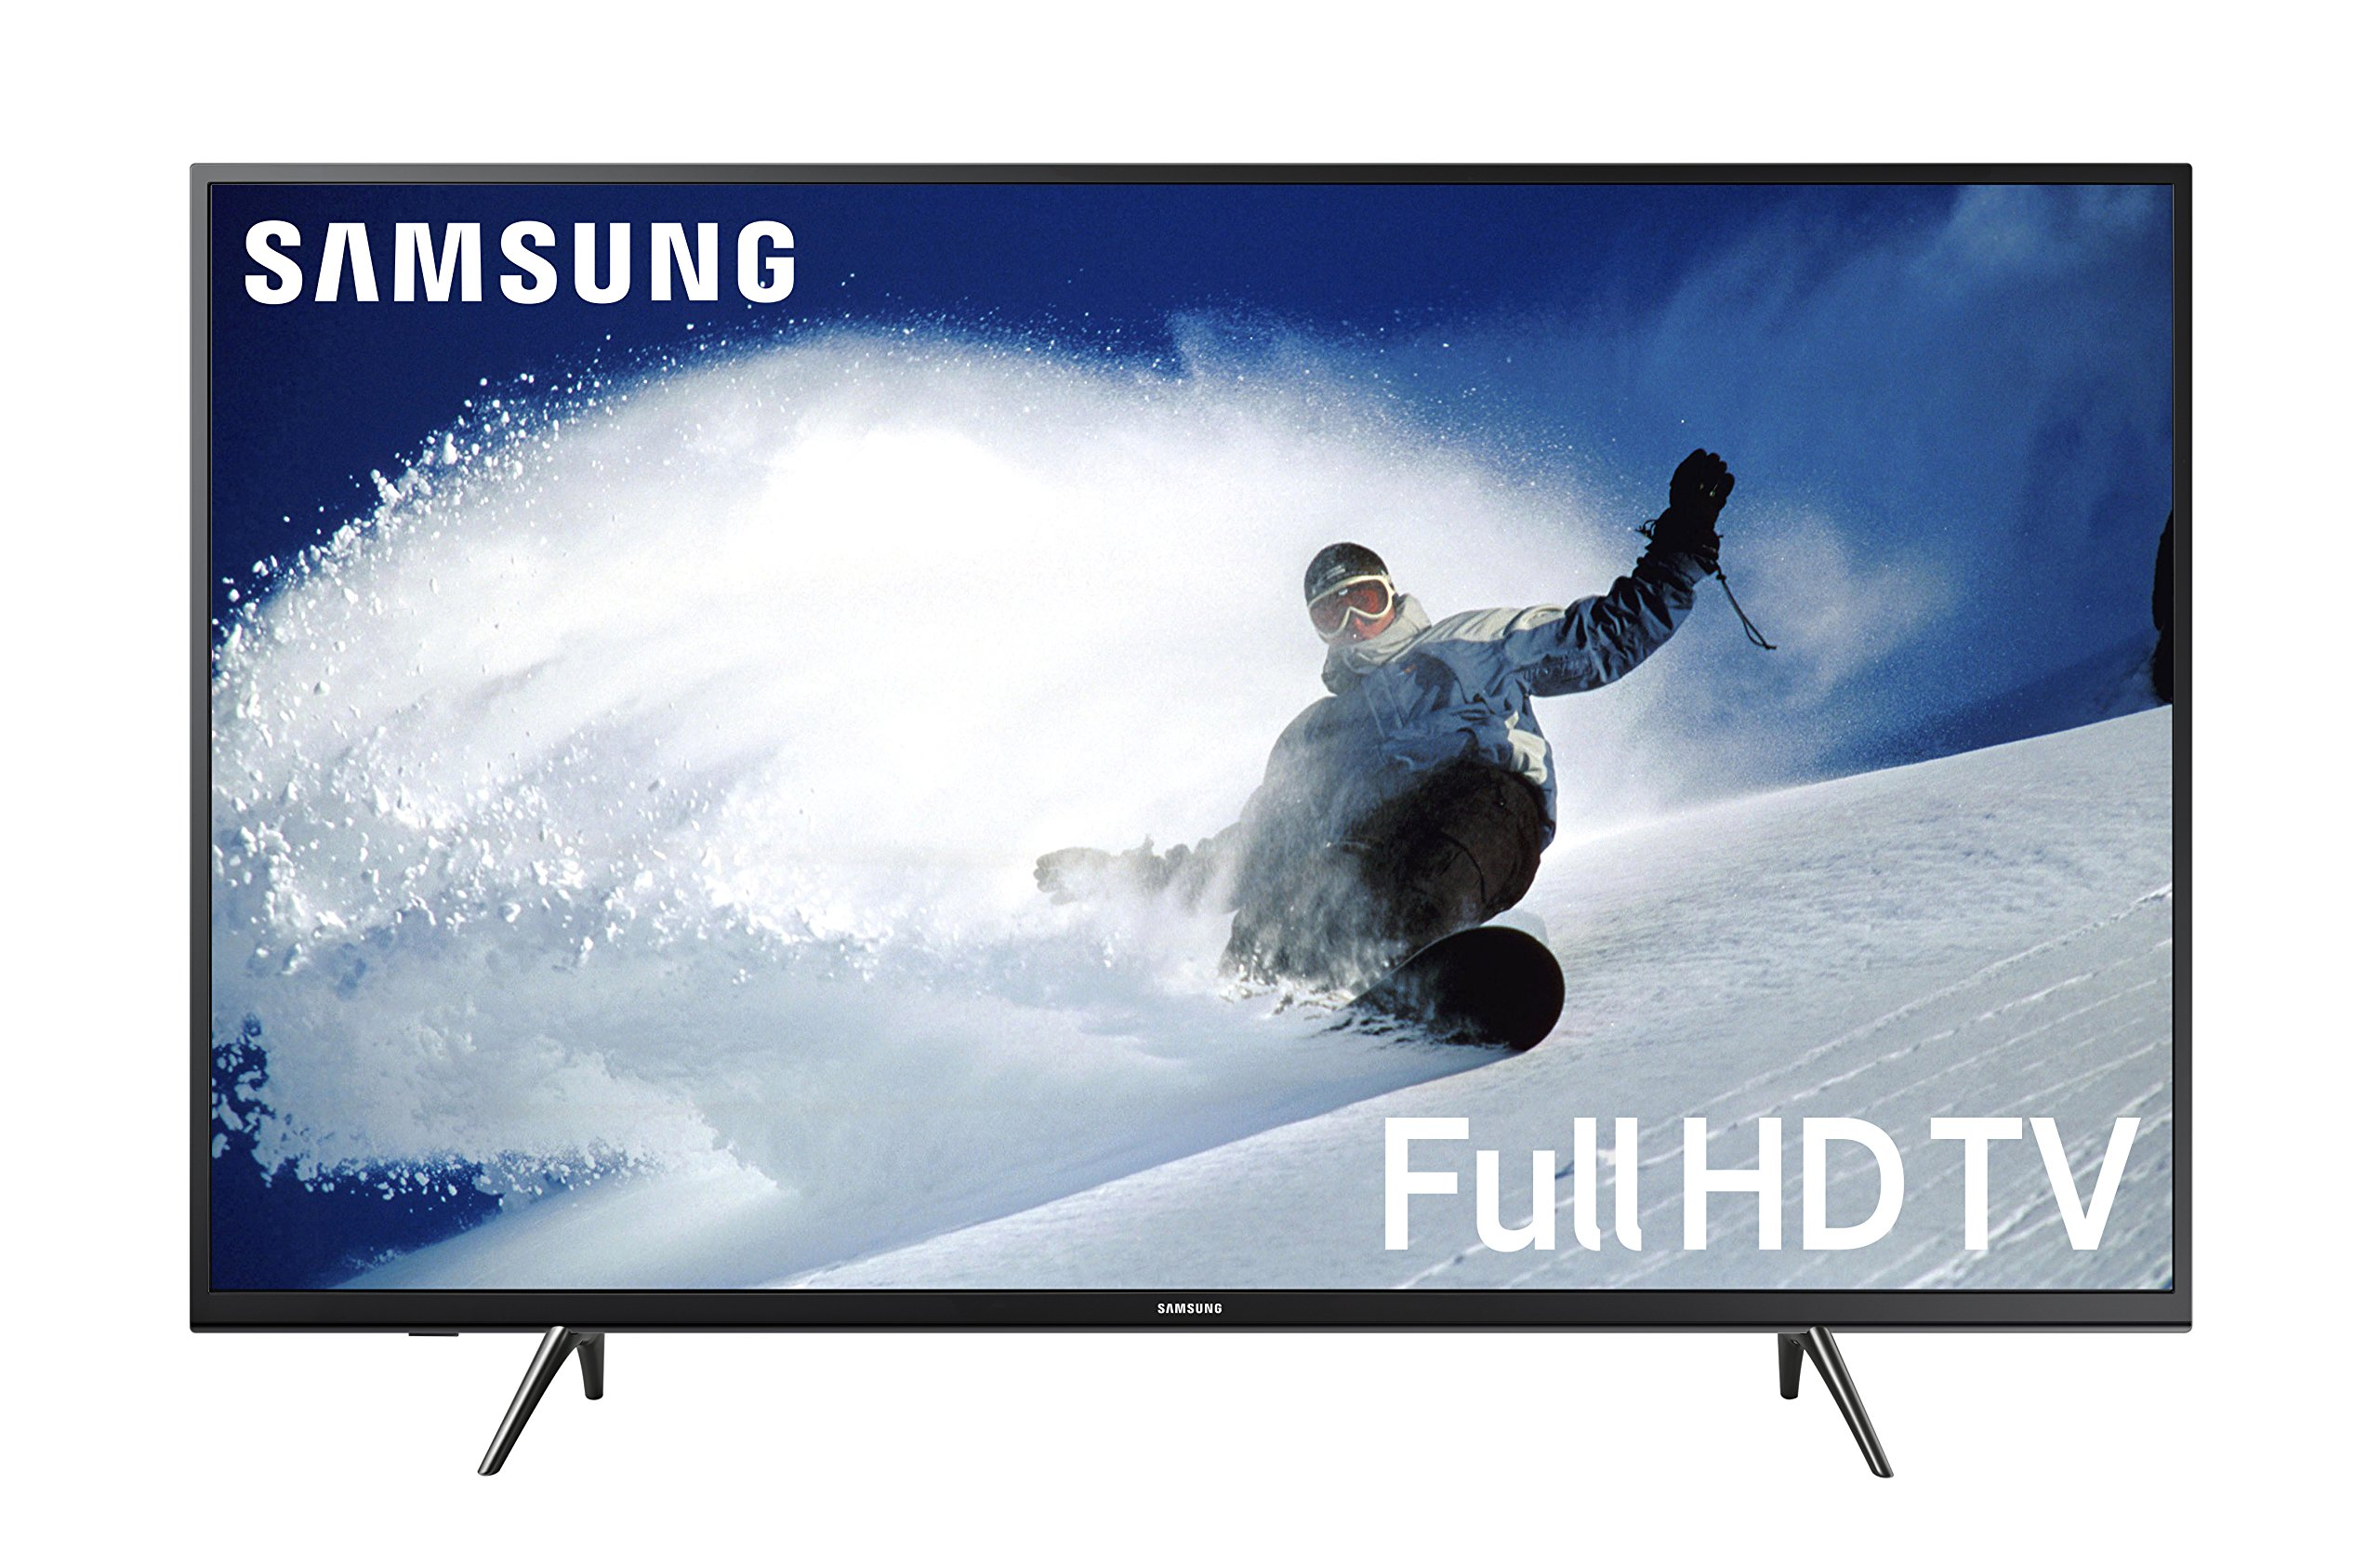 Samsung Electronics UN43J5202A 43-Inch 1080p Smart LED TV (2017 Model) - 81ncppmbXlL - Samsung Electronics UN43J5202A 43-Inch 1080p Smart LED TV (2017 Model)